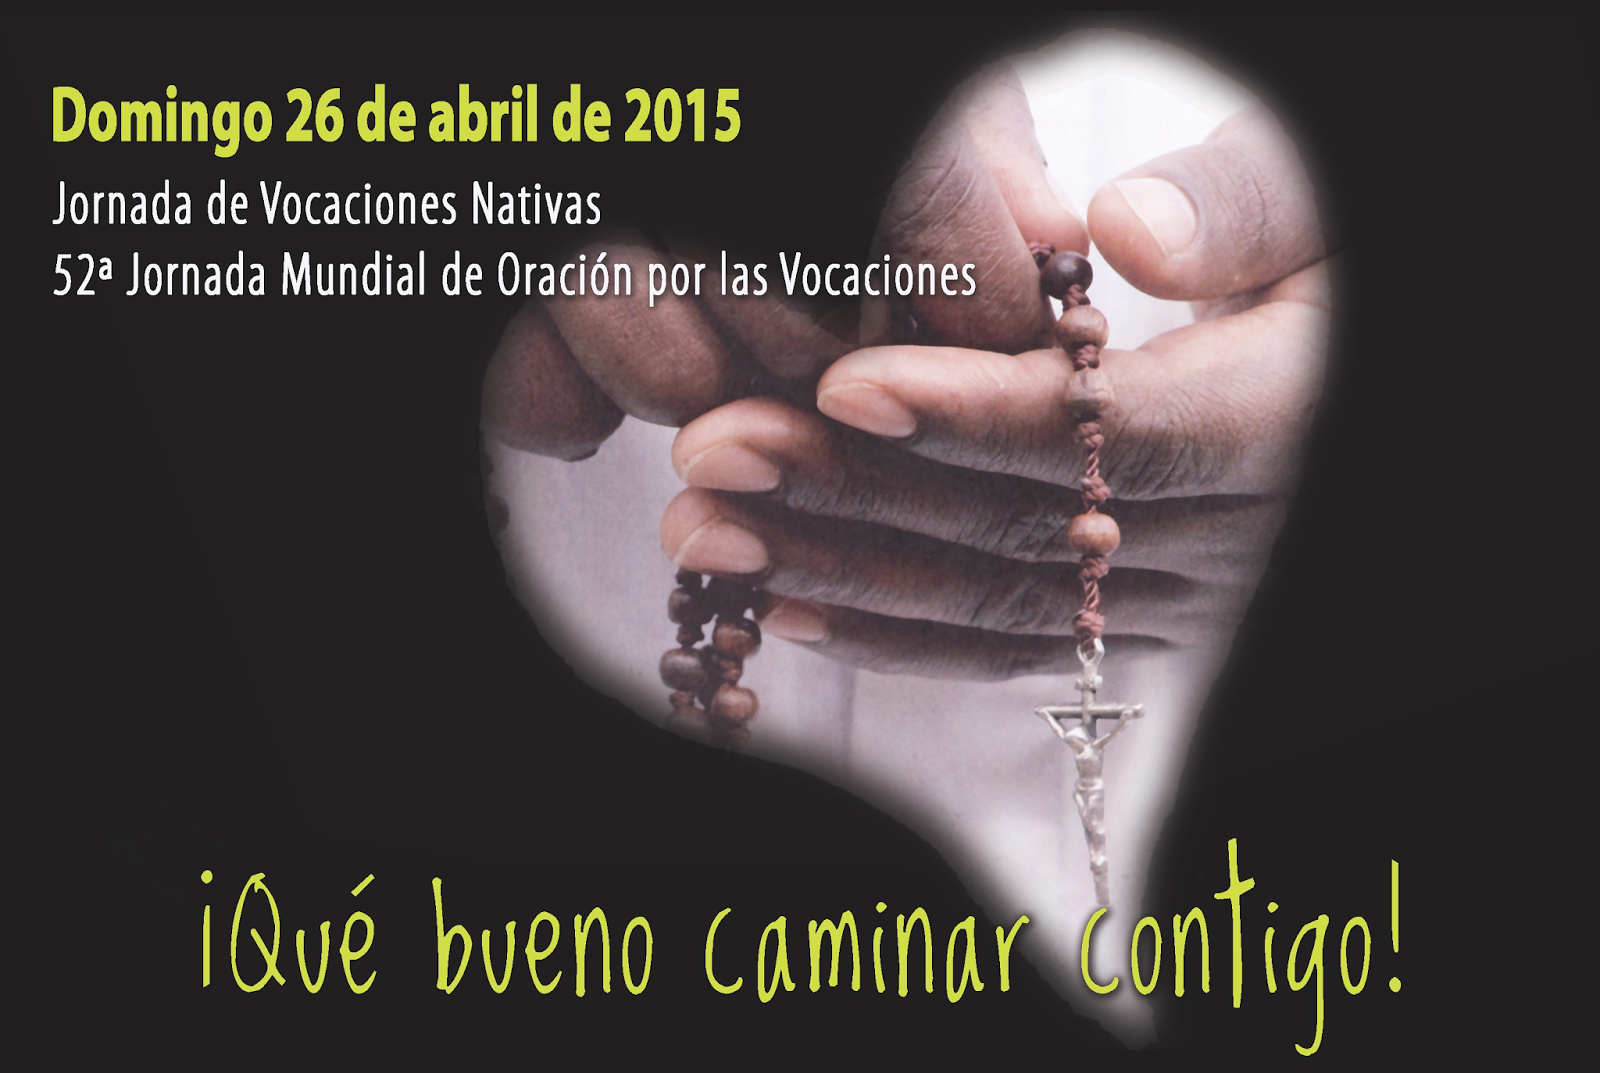 Vocaciones Nativas 2015